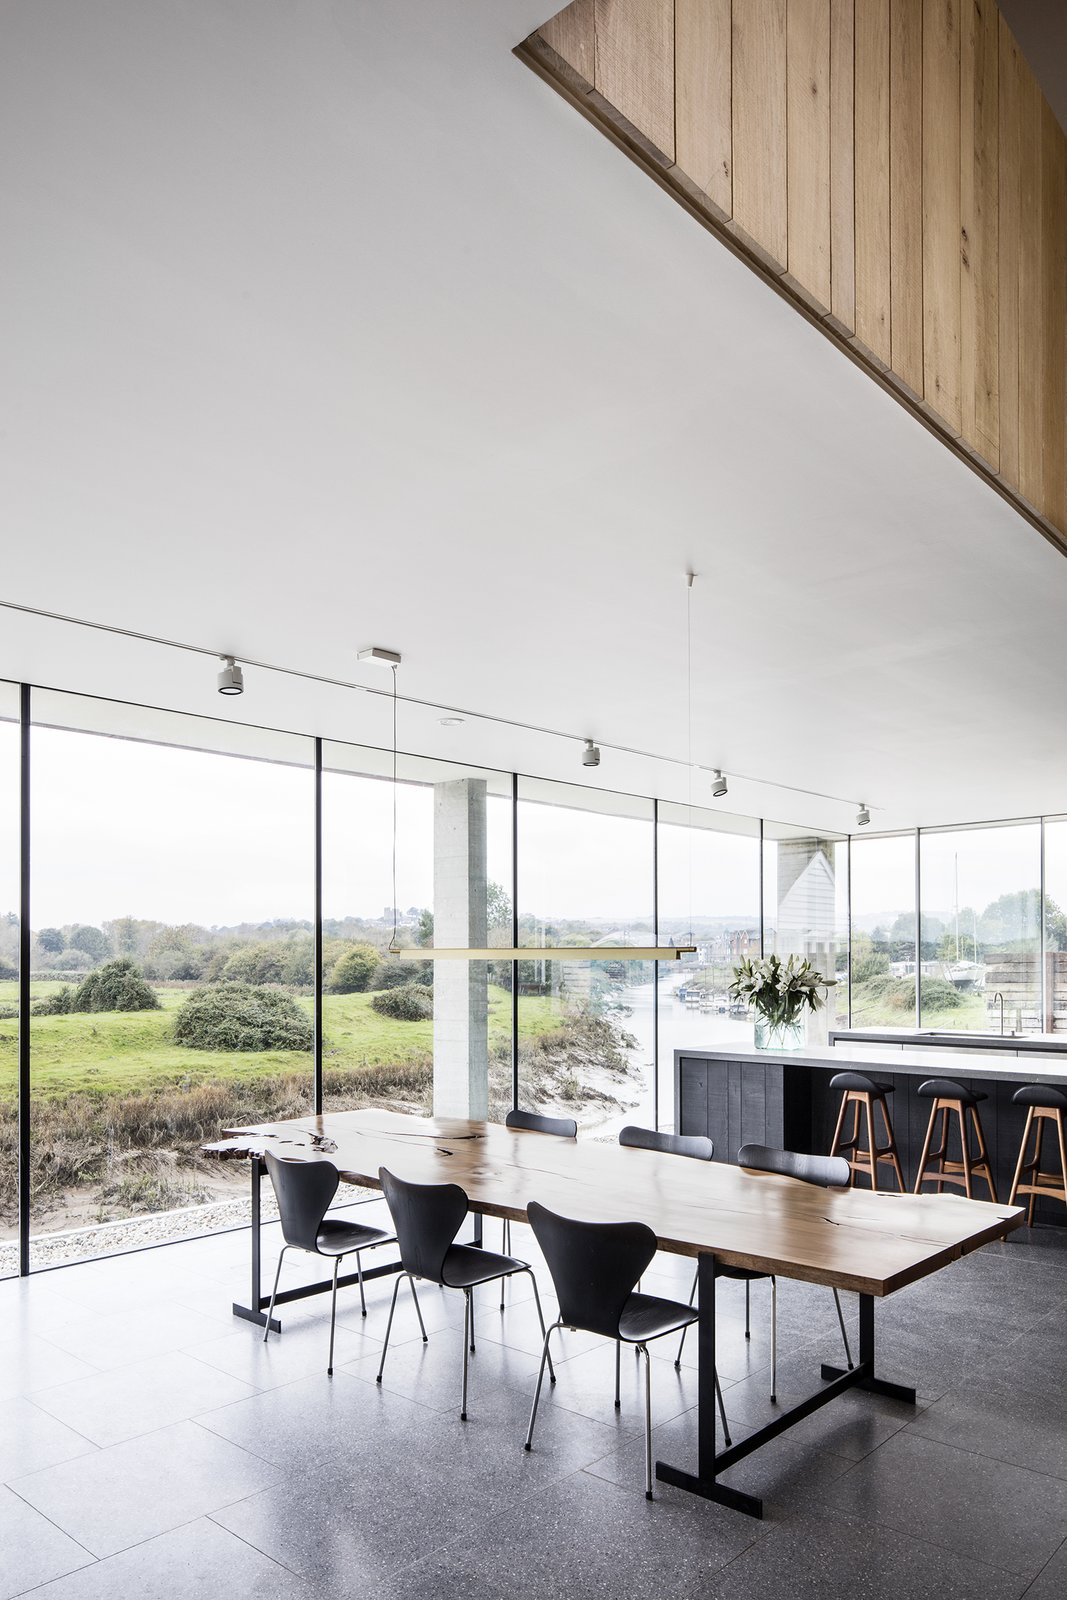 A young family resides in the five-bedroom house: Stephen, who works in advertising, Anita, a lawyer who works in financial services, two young children, and two basset hounds. The open-plan ground level is meant to be flexible, and its layout can be adapted as the family's needs change over time. Floor-to-ceiling windows overlook the river that runs right by the structure.